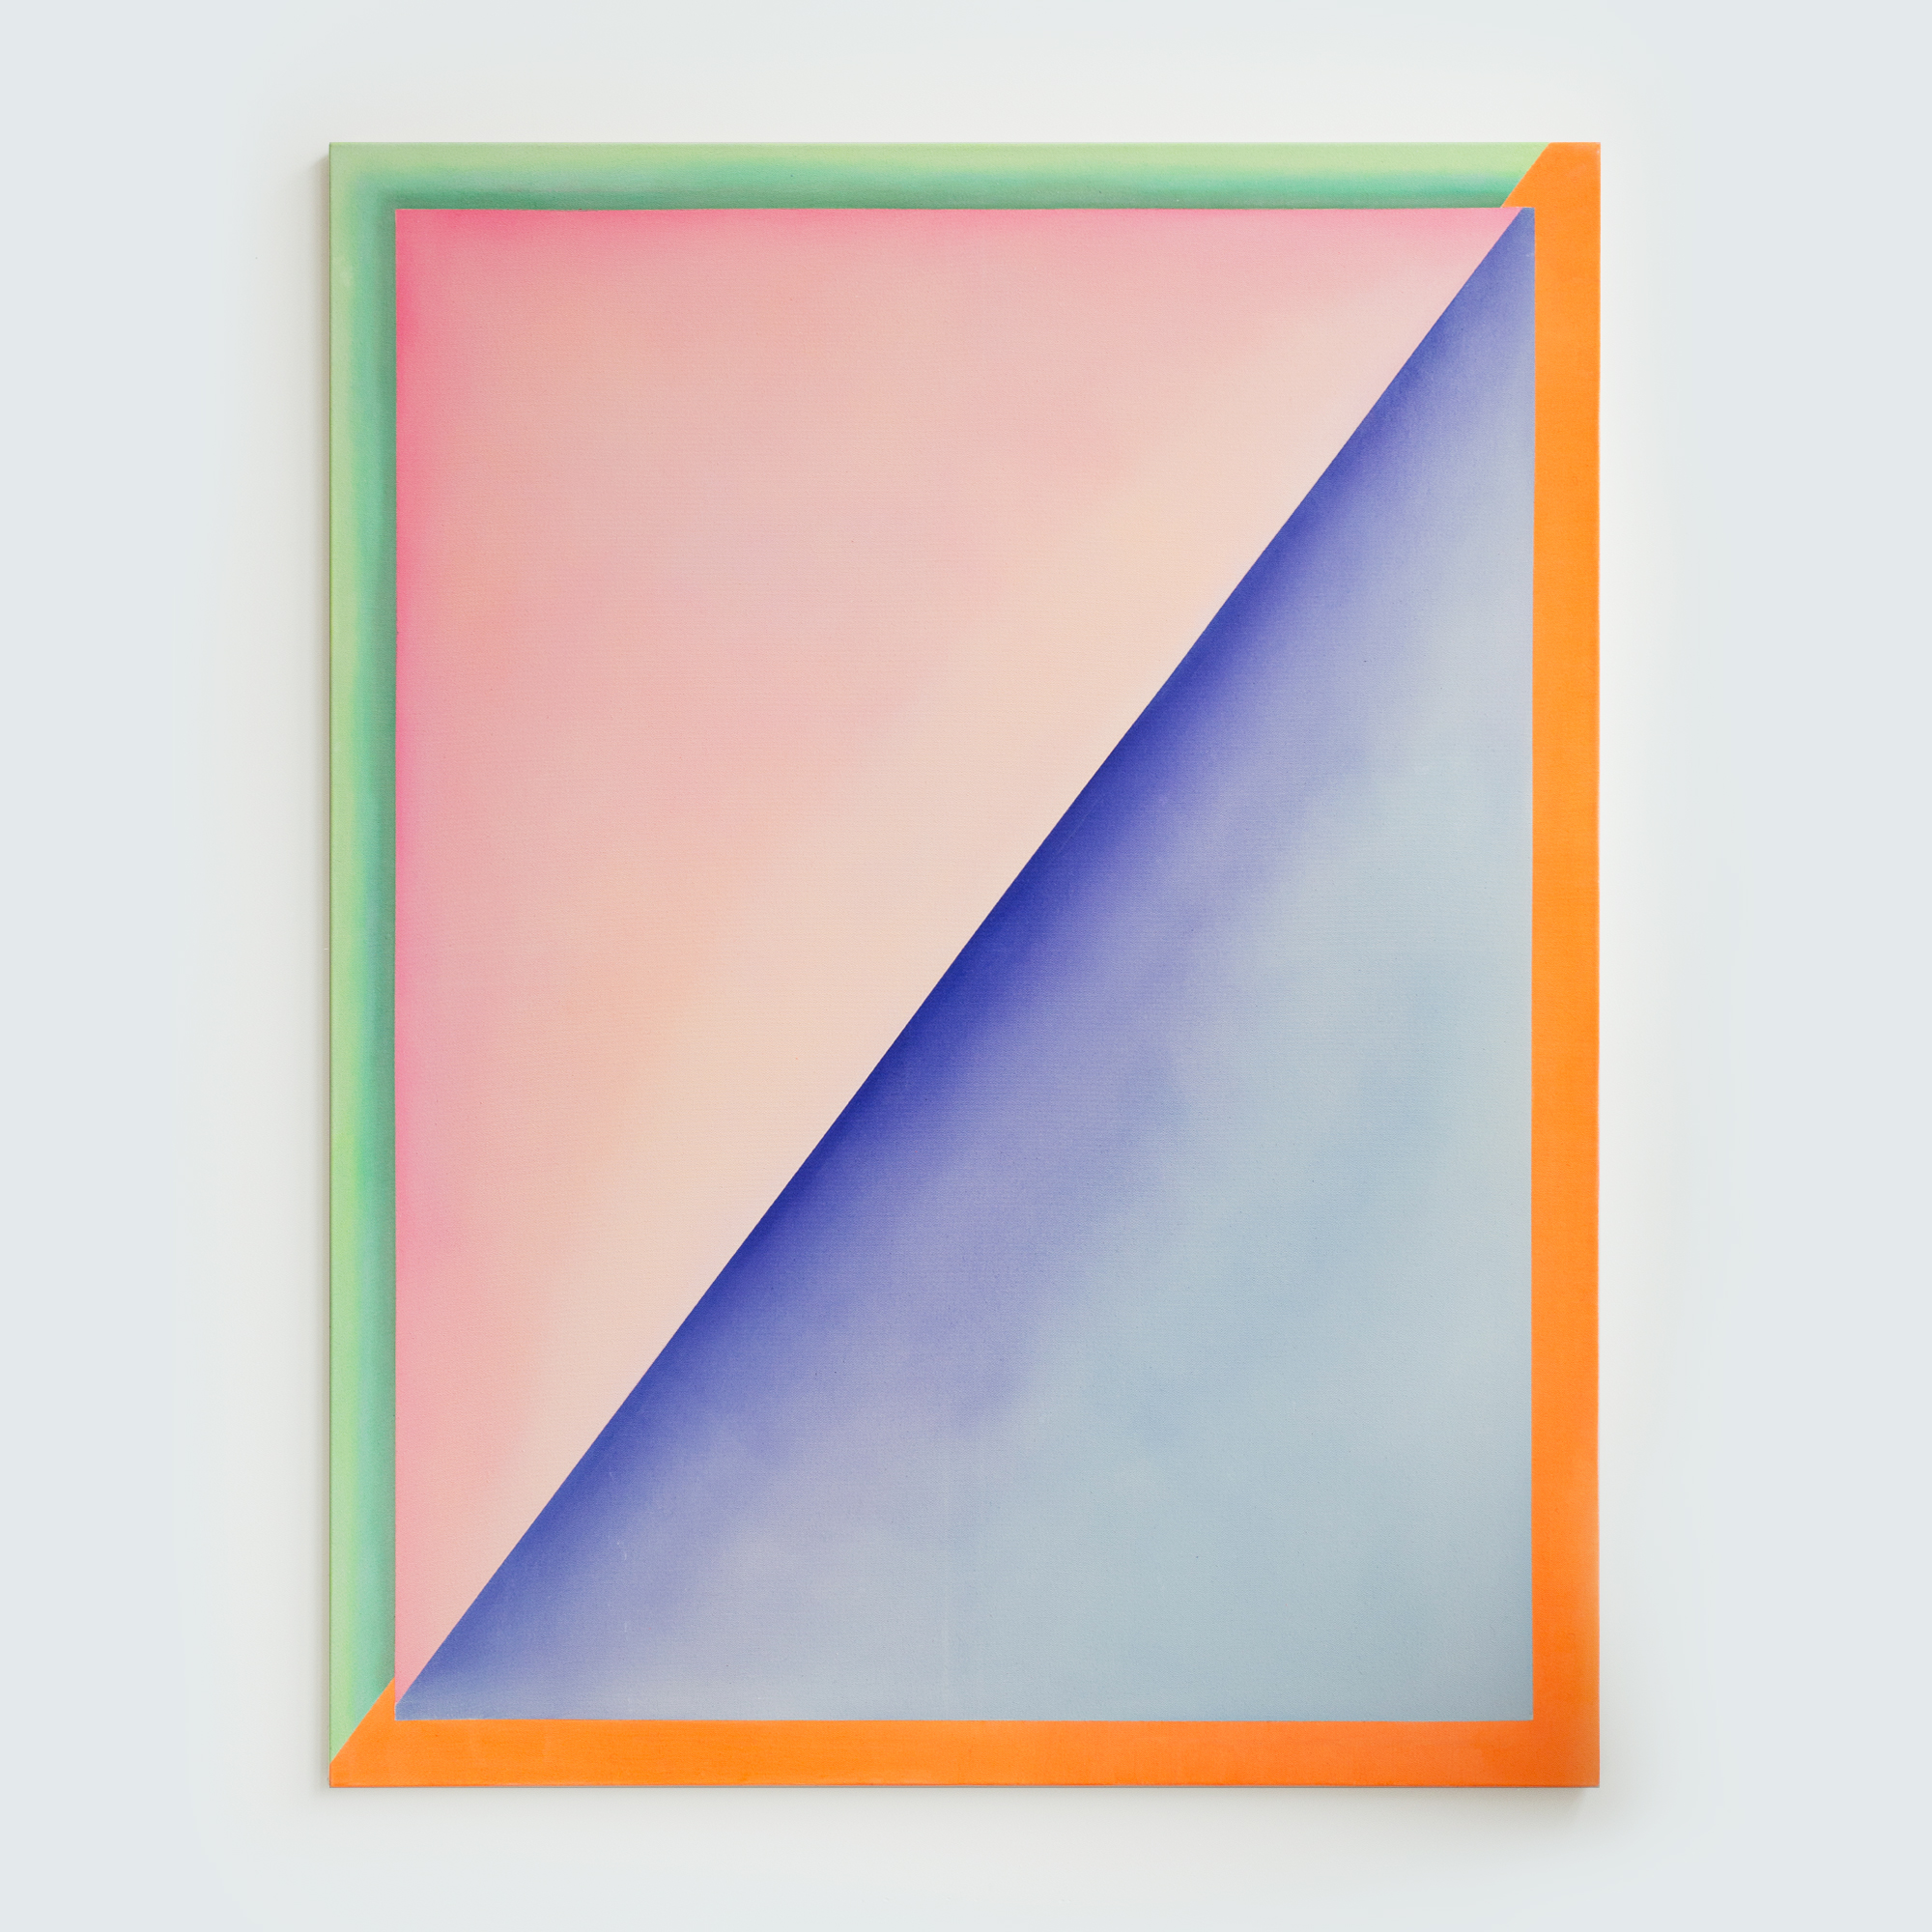 "Alina Birkner ""Untitled (Blue and Blush)"" 2015, 180x140 cm, Acrylic on Canvas"